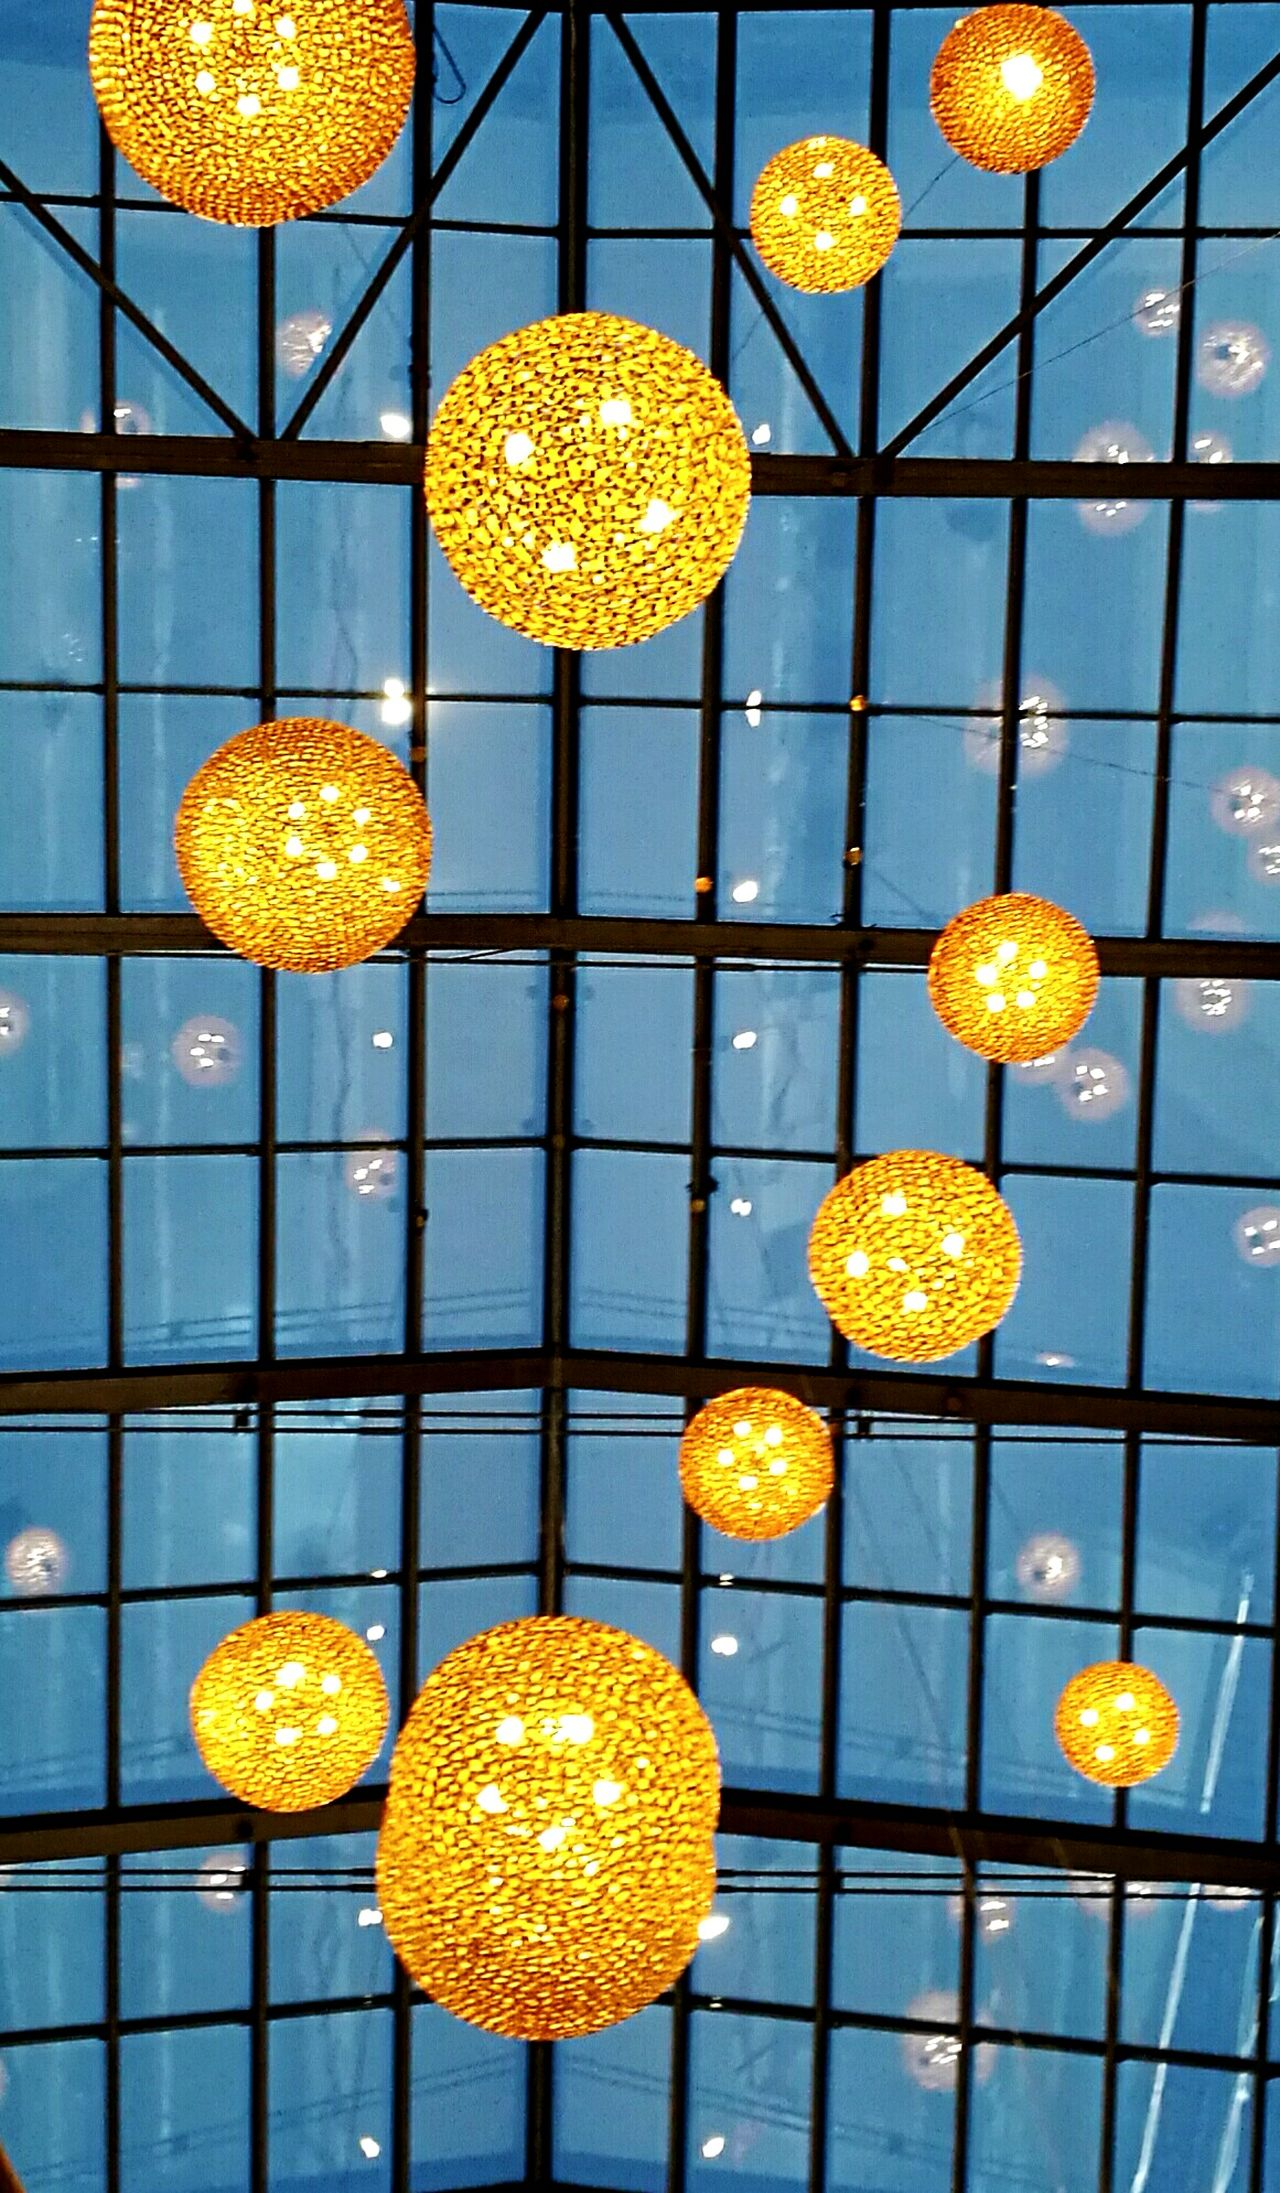 Pattern Illuminated No People Mall Large Group Of Objects Low Angle View Indoors  Light Light Bulbs Window Decoracion Golden Abstract The City Light